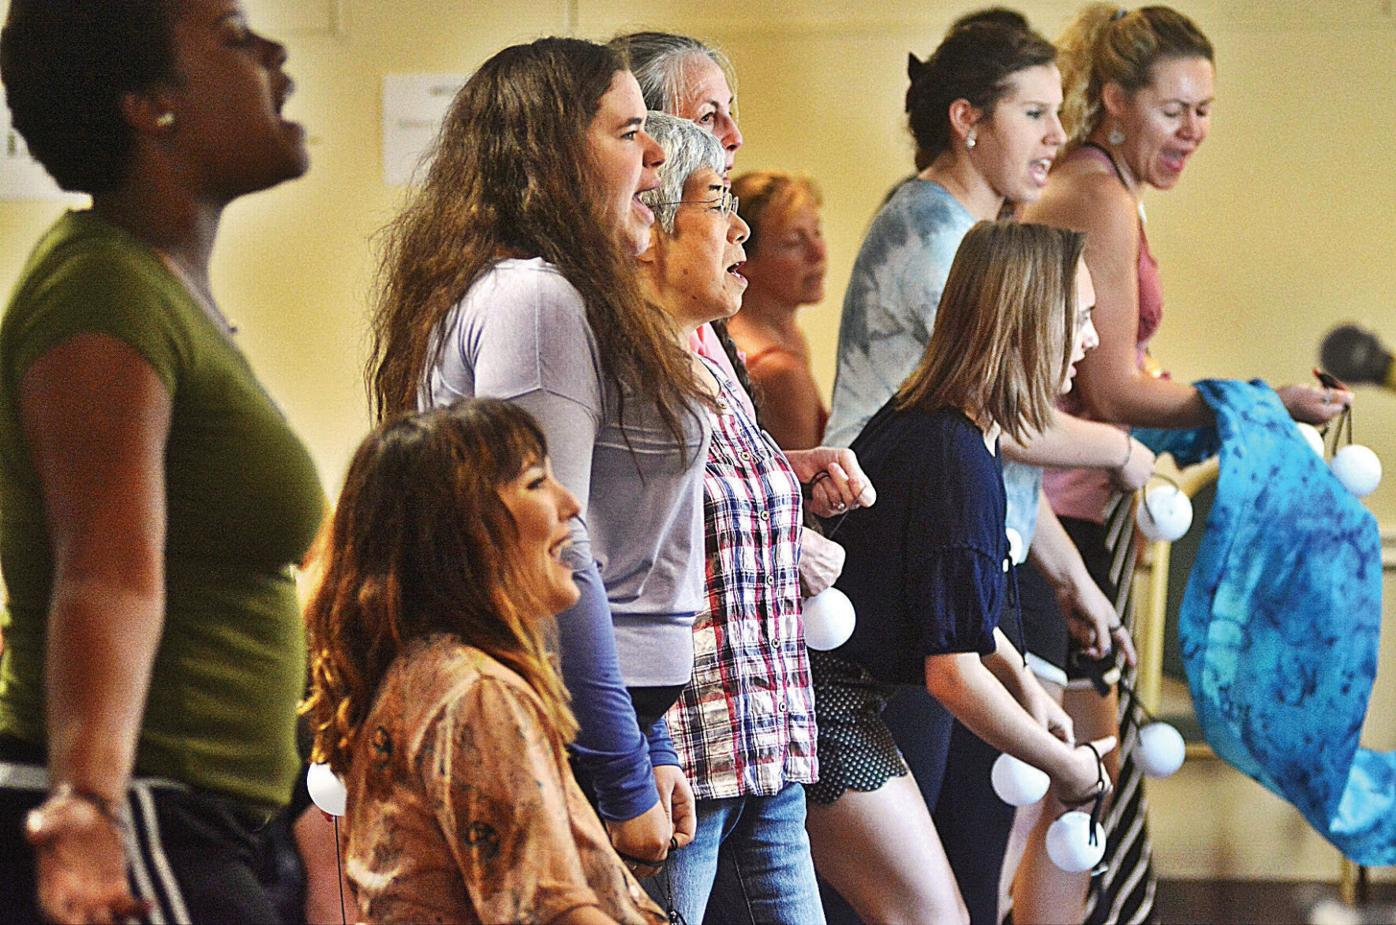 Dreams of drama: Williamstown Theatre Festival performance on tap for 80 local actors